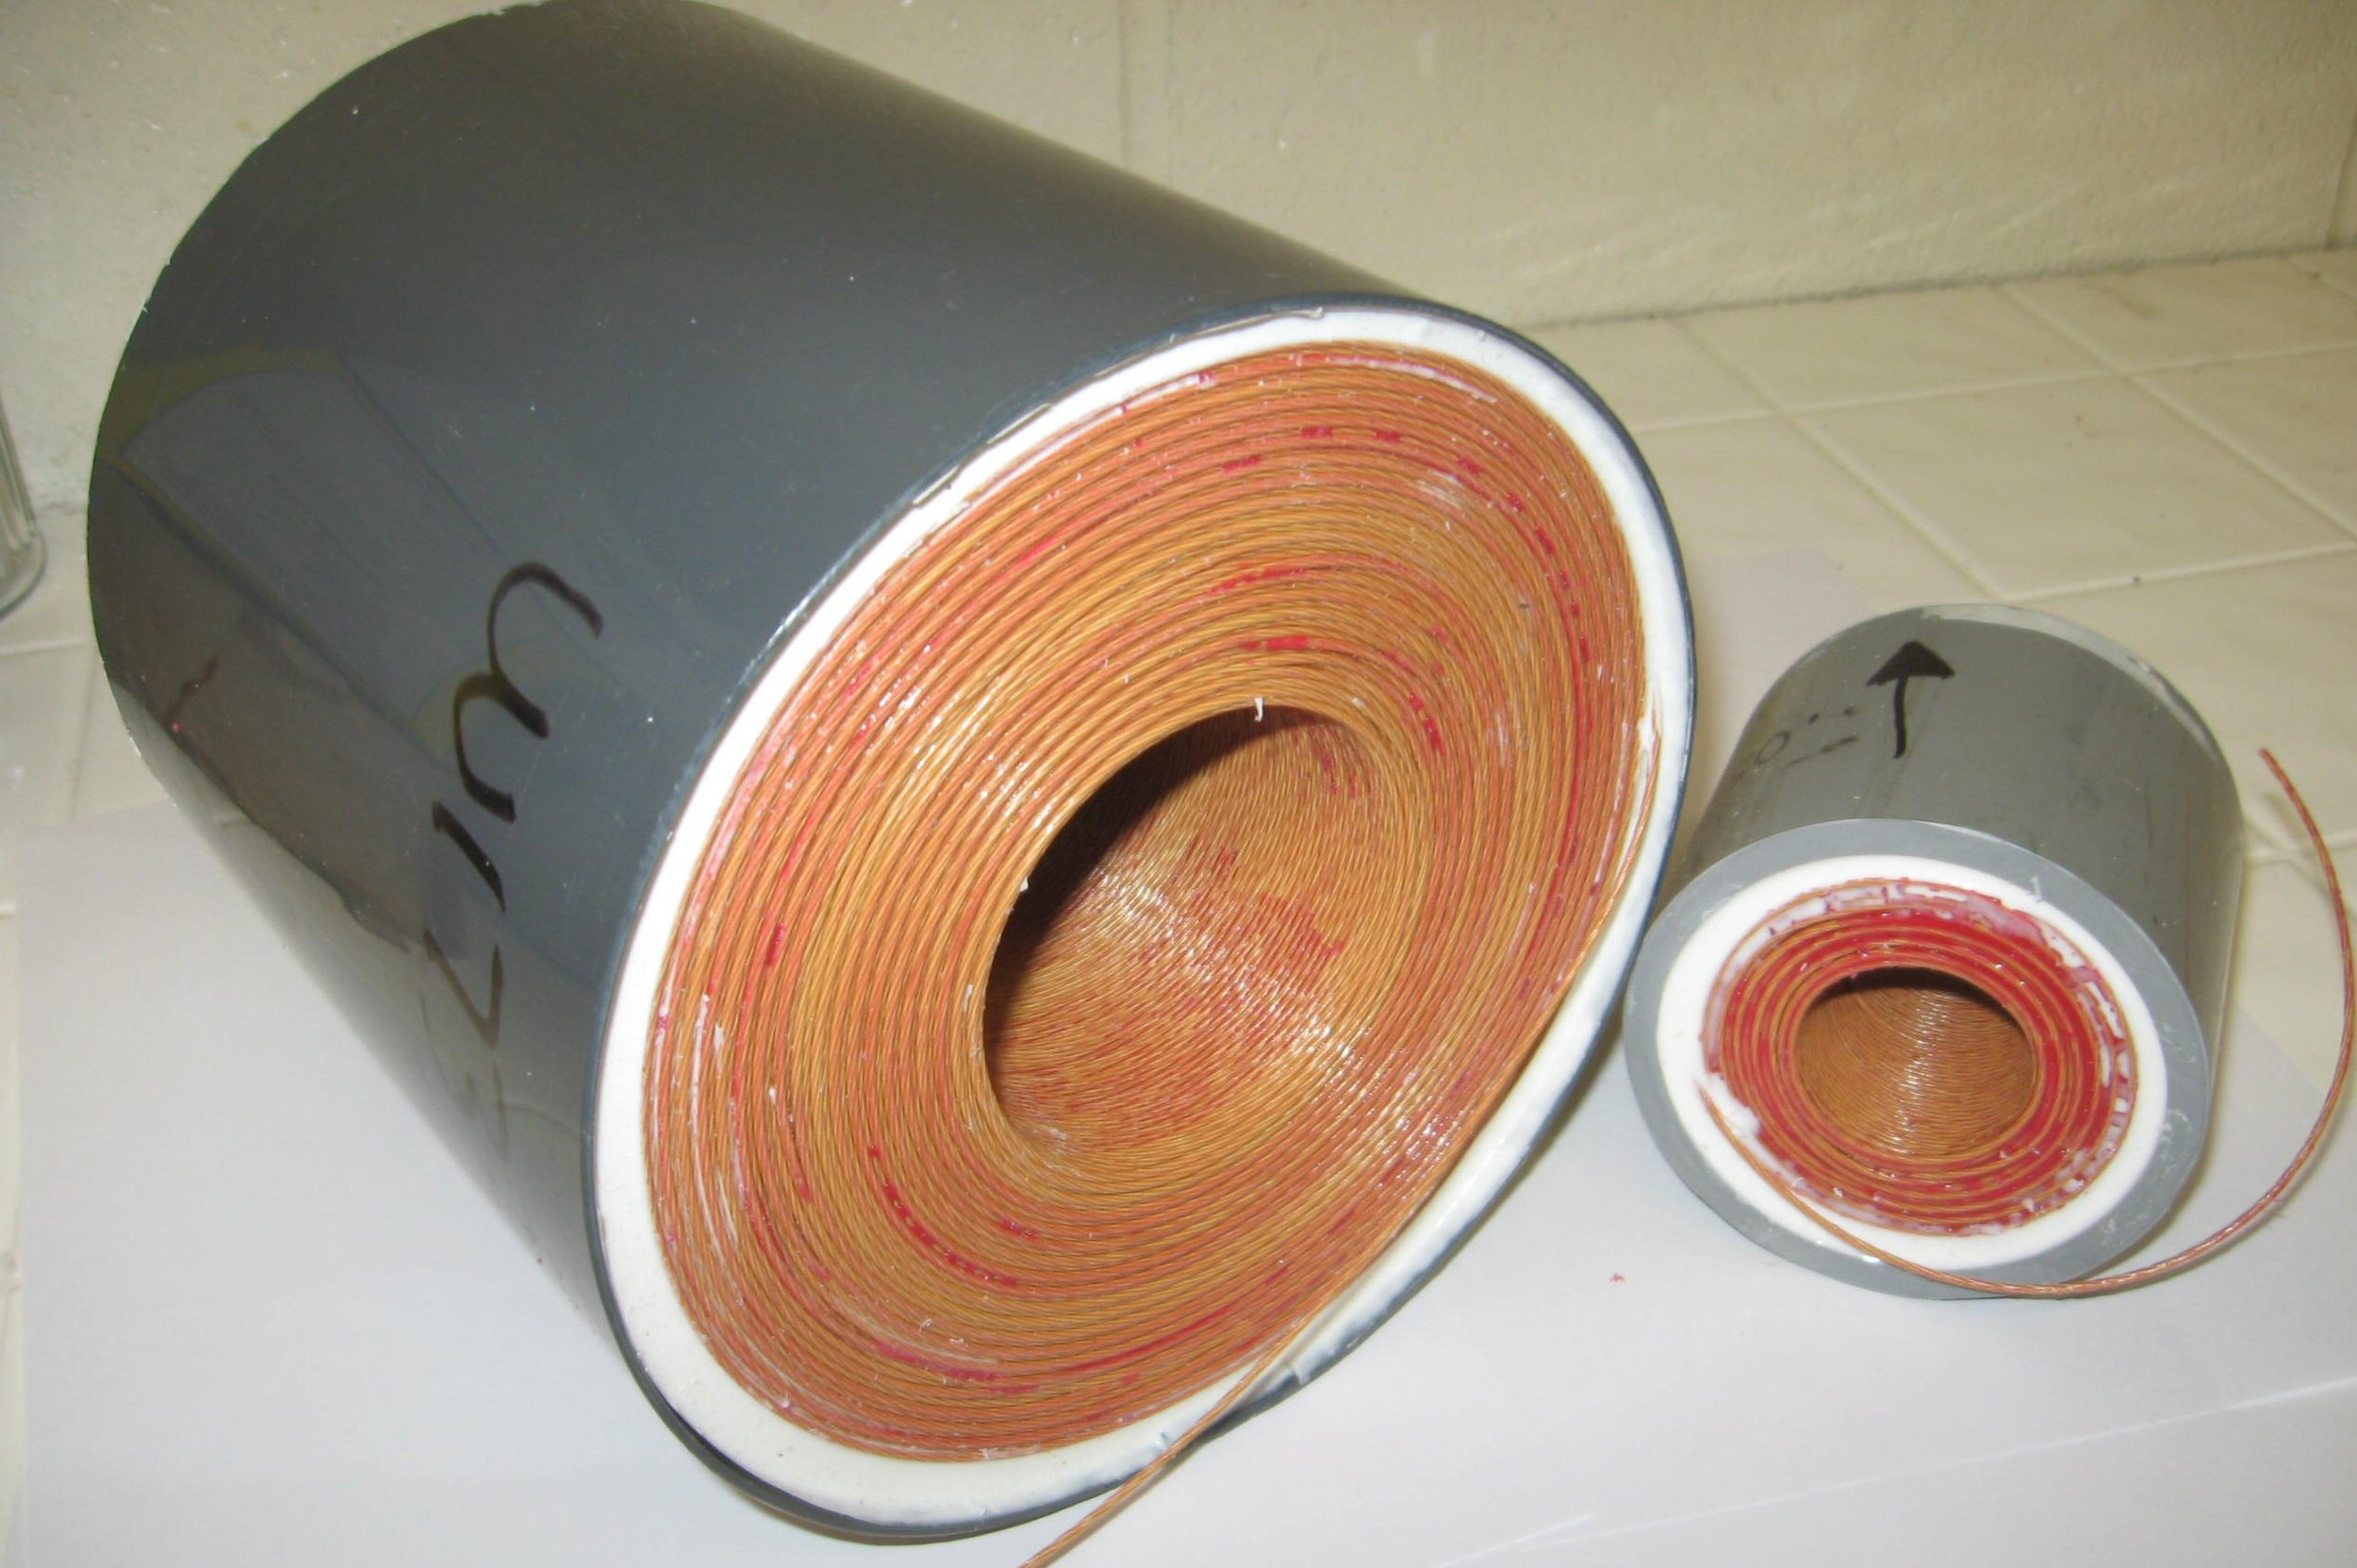 Precision_Wound_Fiber_Optic_Cable_BurnhamPolymeric.jpg